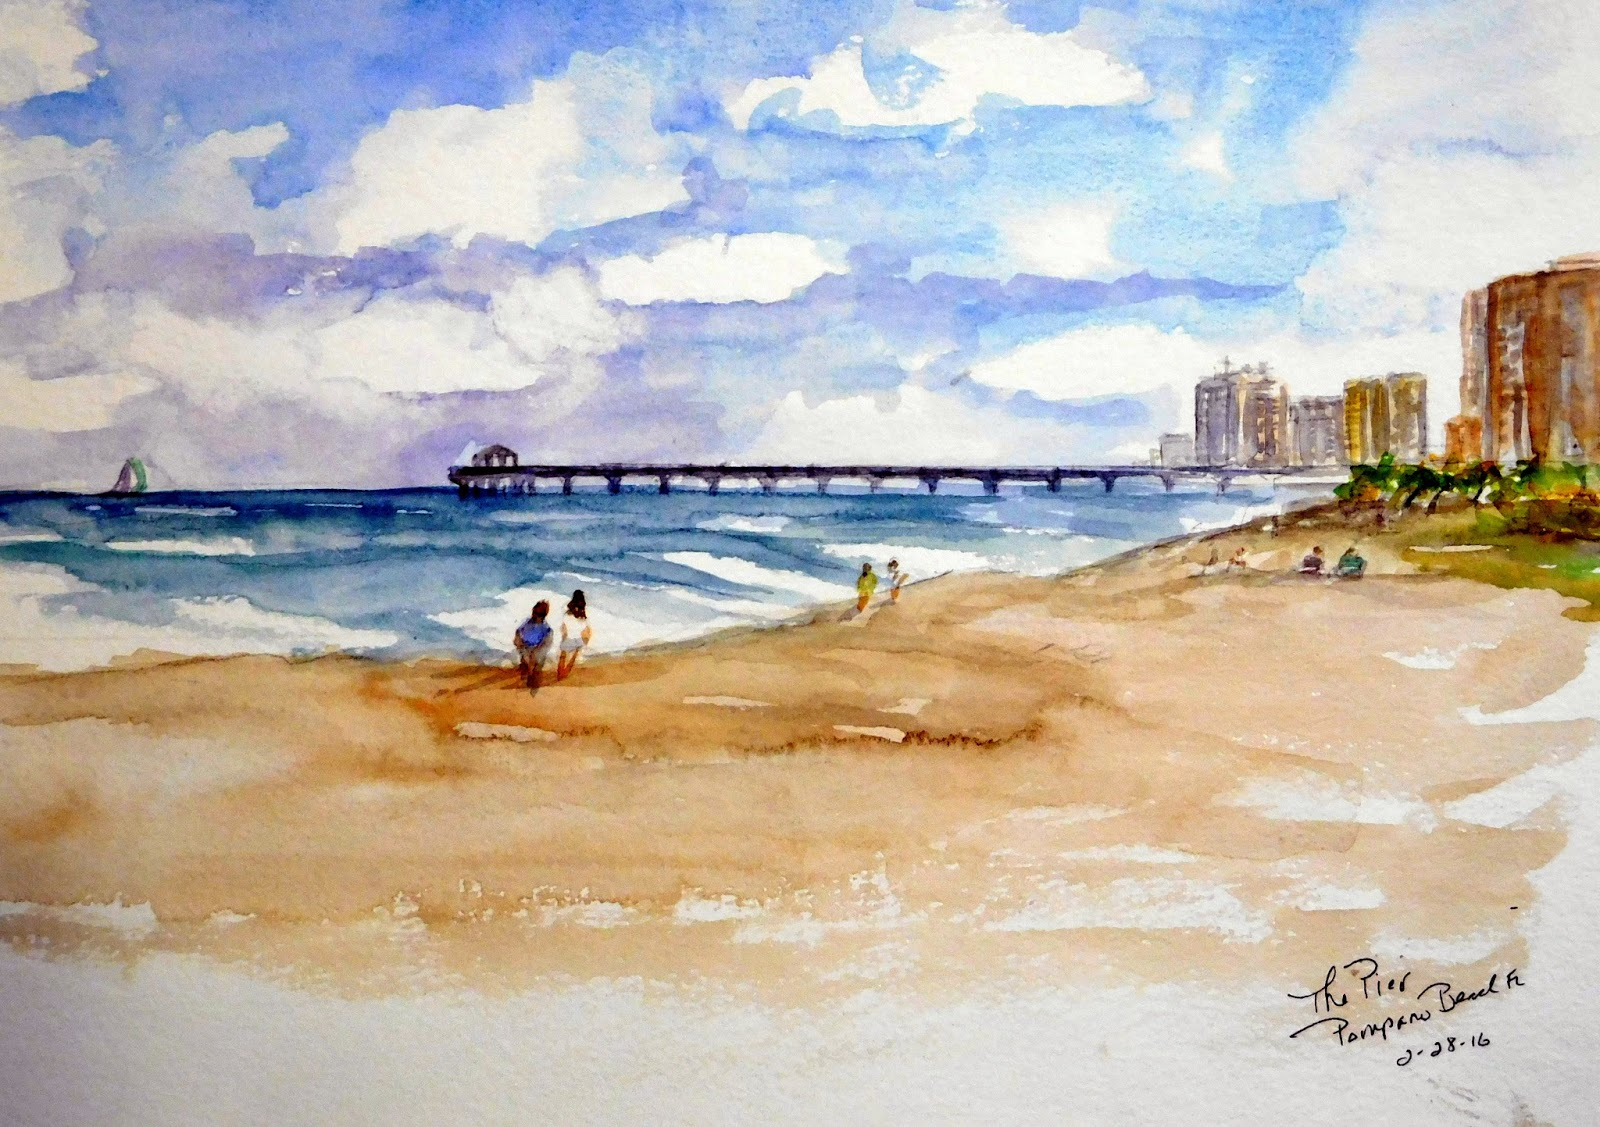 Anna jacke paints my life through watercolors for Pompano fishing pier